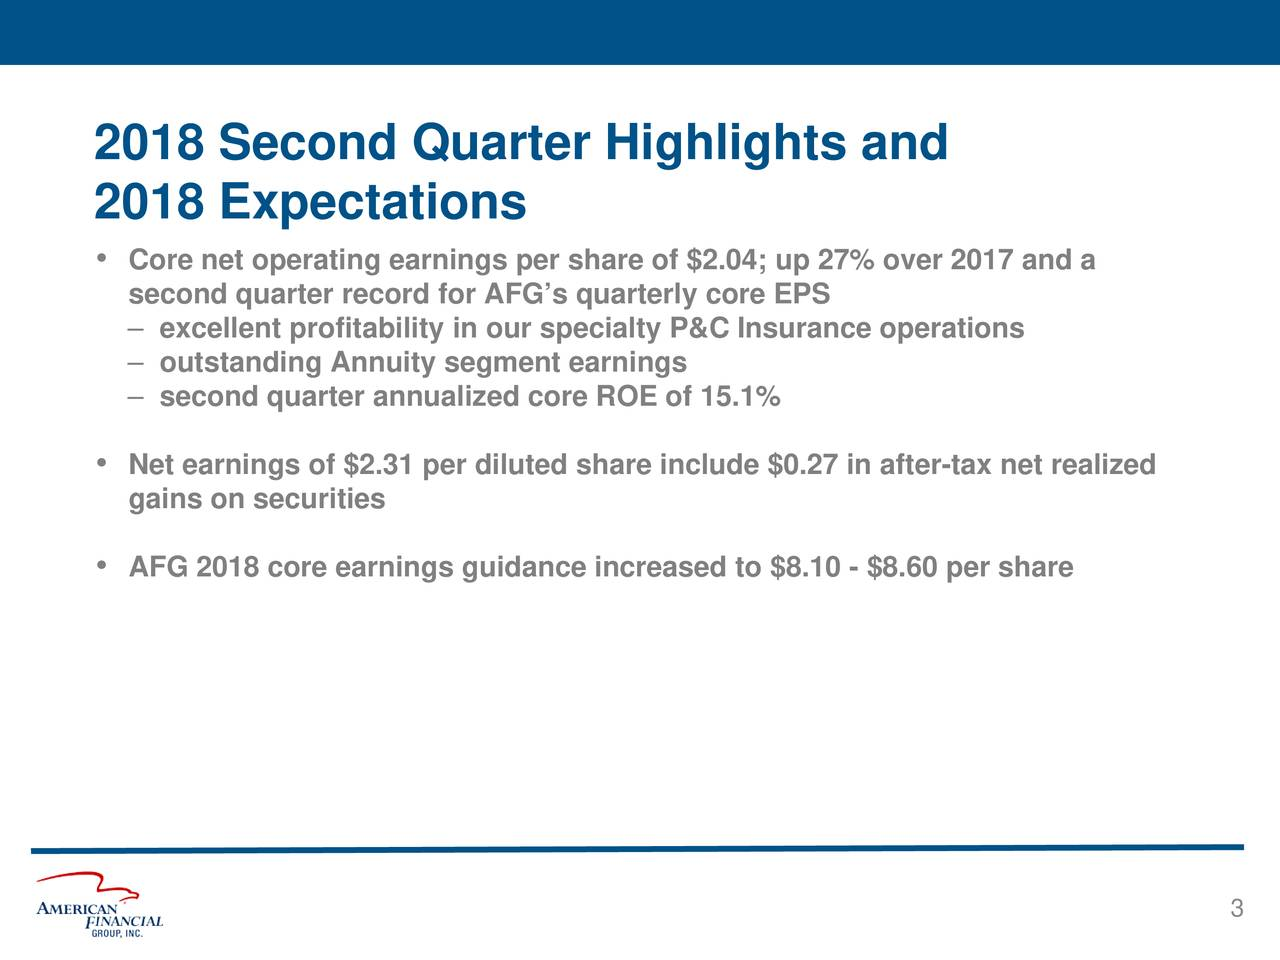 2018 Expectations • Core net operating earnings per share of $2.04; up 27% over 2017 and a second quarter record for AFG's quarterly core EPS – excellent profitability in our specialty P&C Insurance operations – outstanding Annuity segment earnings – second quarter annualized core ROE of 15.1% • Net earnings of $2.31 per diluted share include $0.27 in after-tax net realized gains on securities • AFG 2018 core earnings guidance increased to $8.10 - $8.60 per share 3